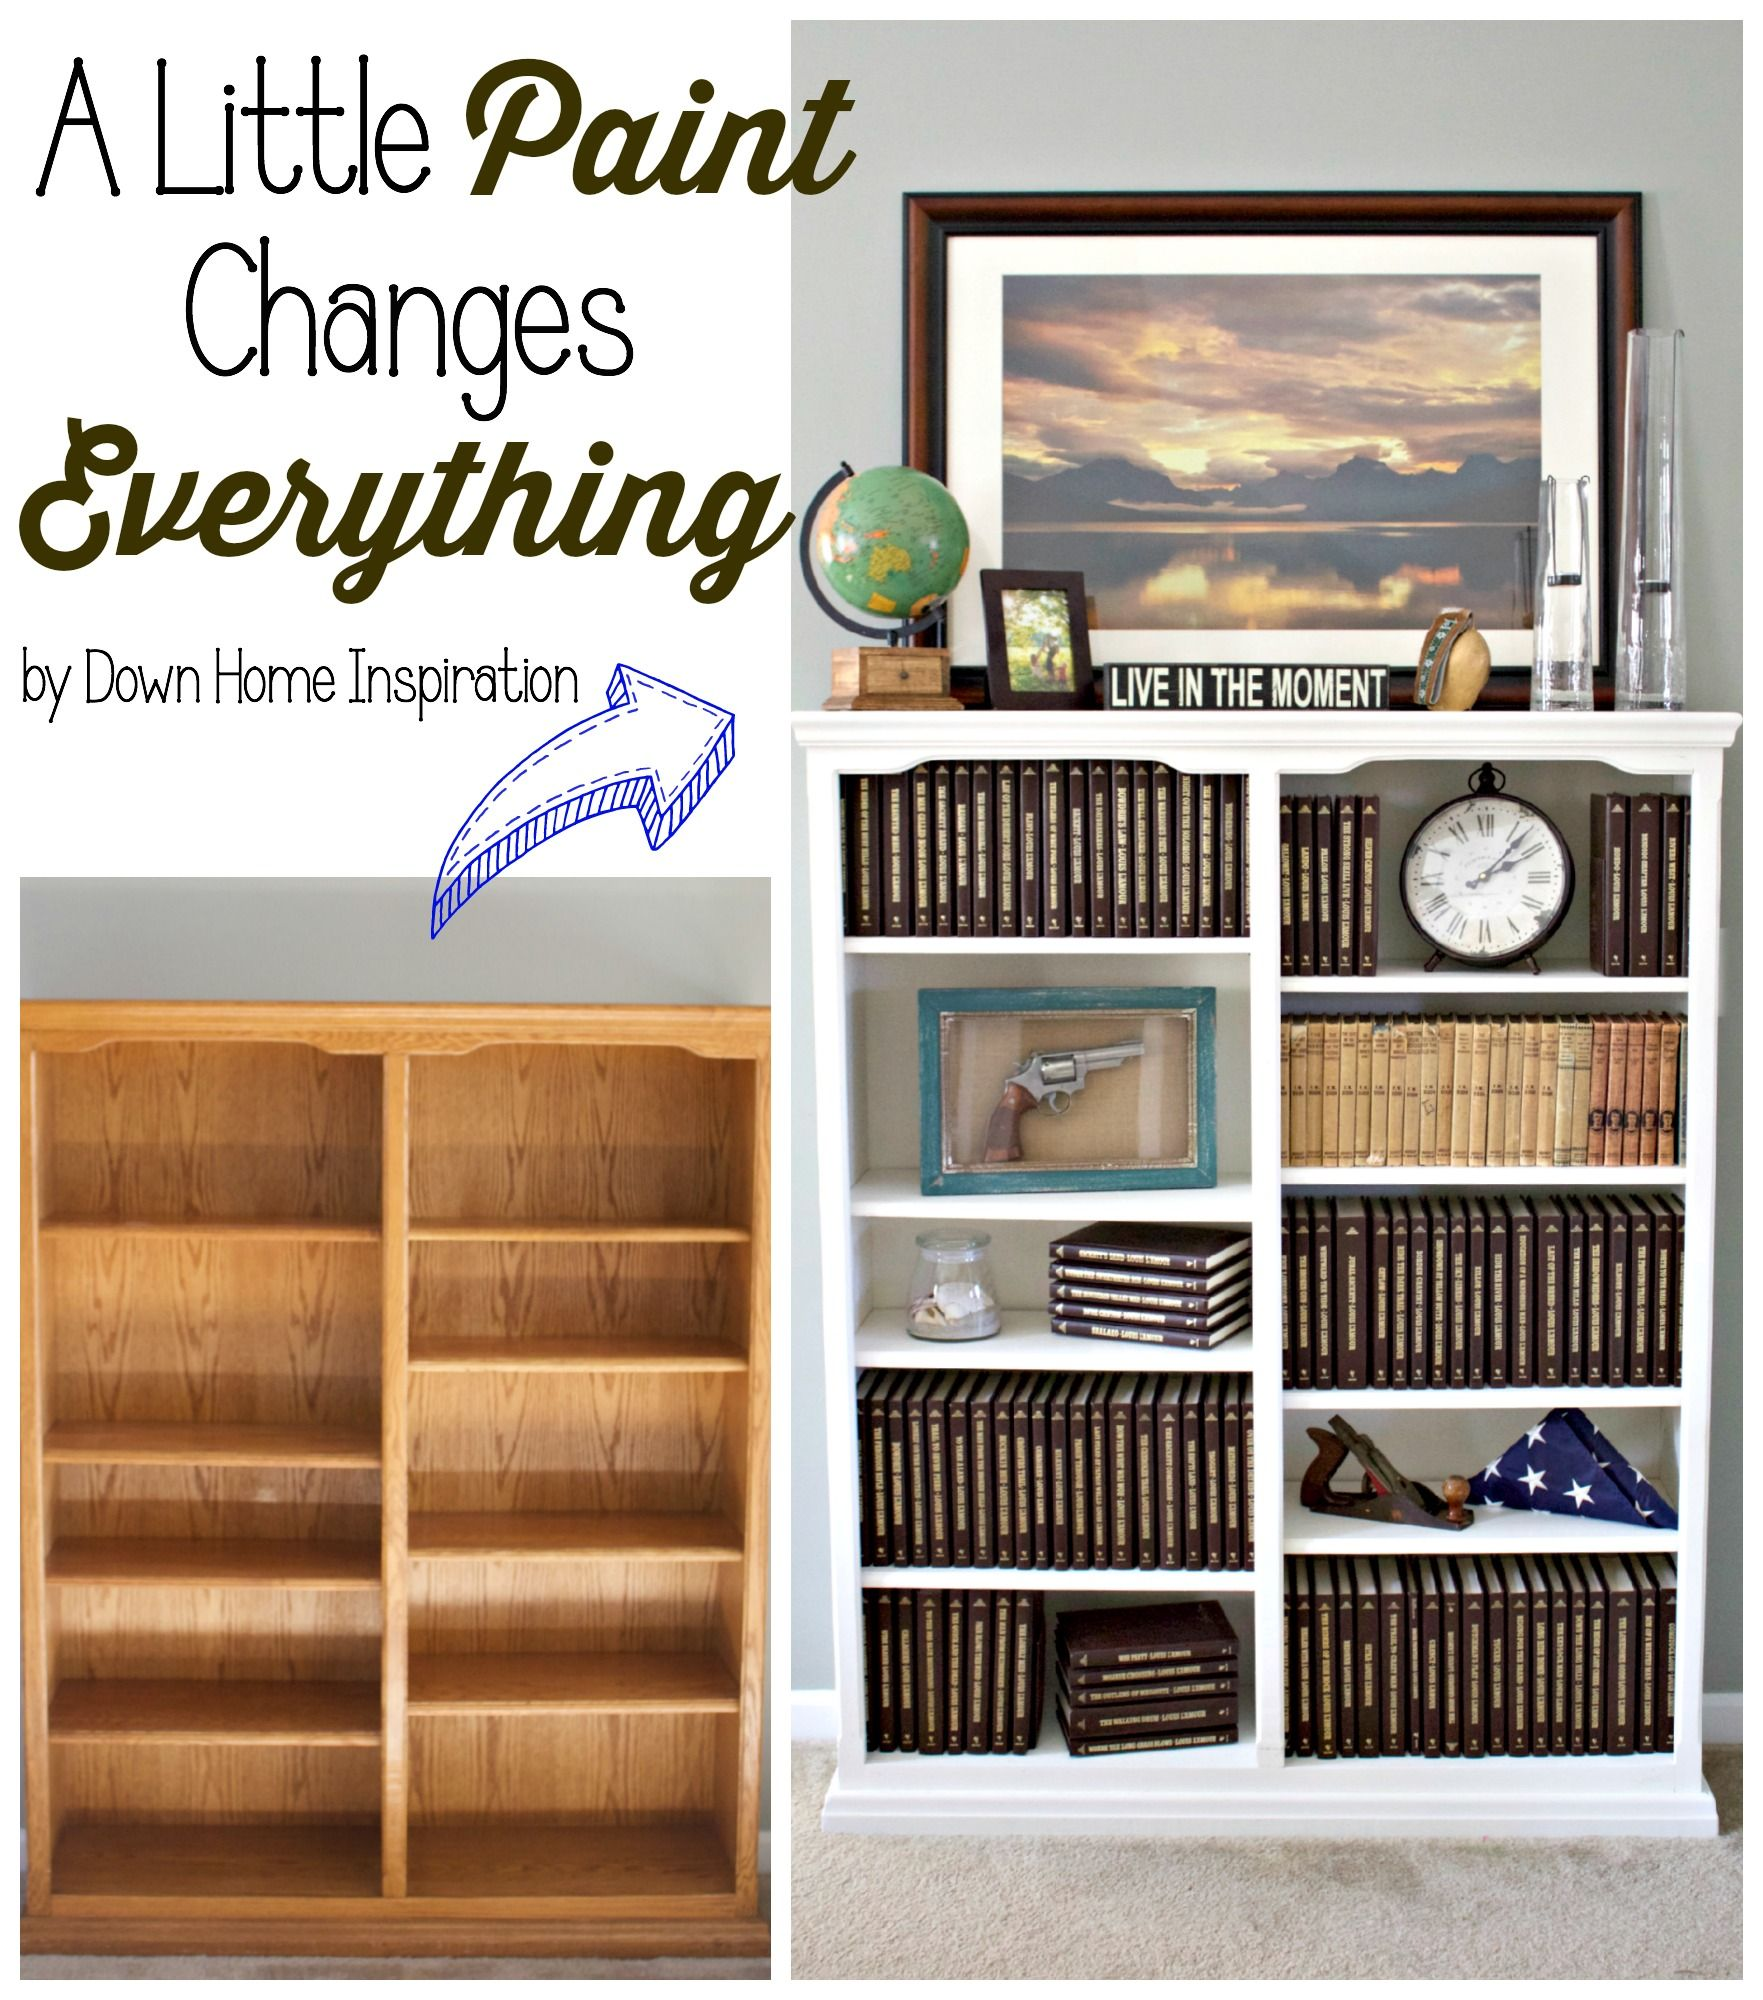 A Little Paint Changes Everything - The Story of my Upcycled, Hand me Down Painted Bookcase - Down Home Inspiration